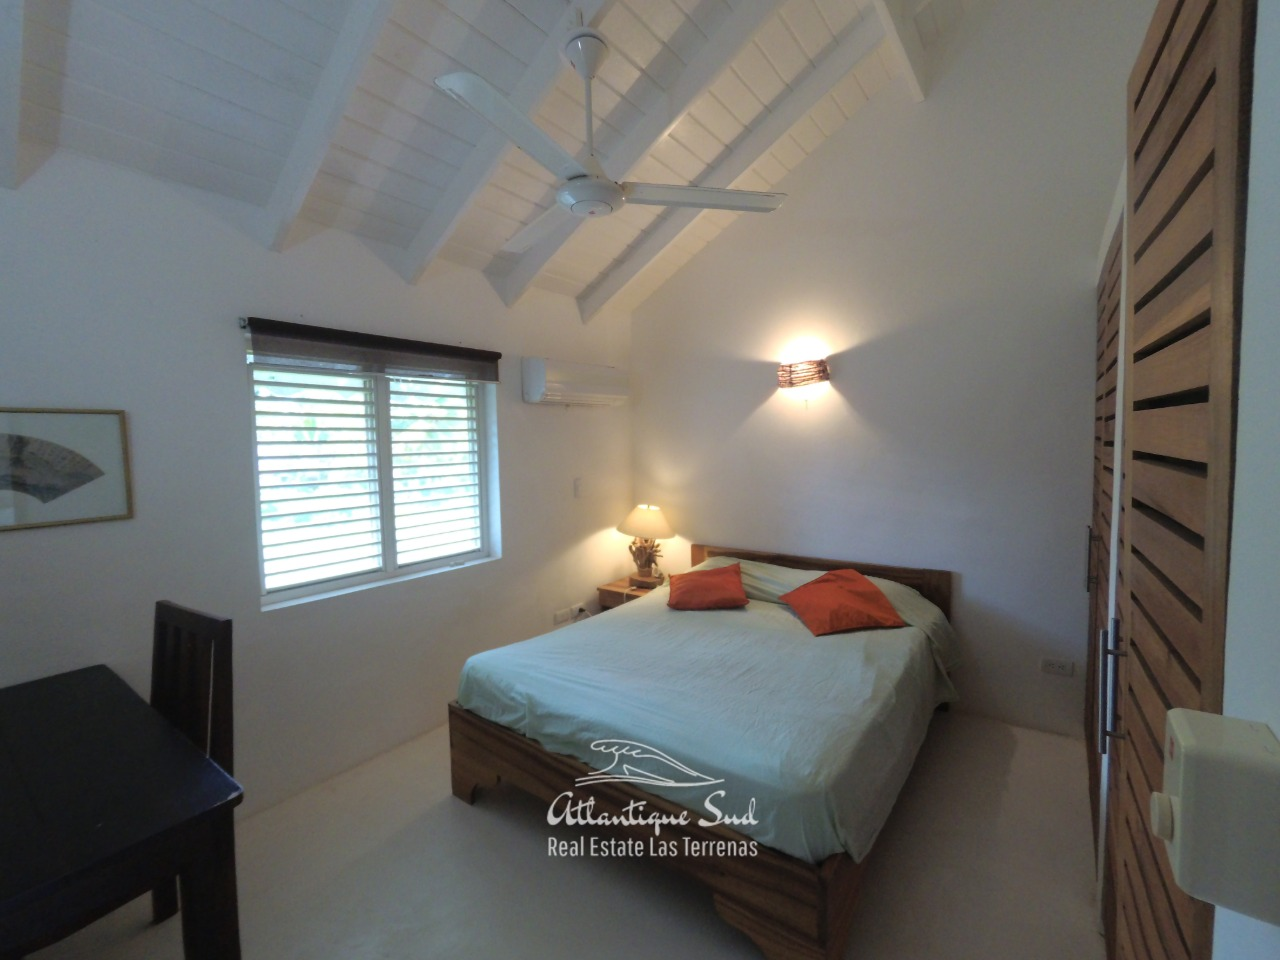 Villa for sale steps from the beach in las terrenas 6.jpeg